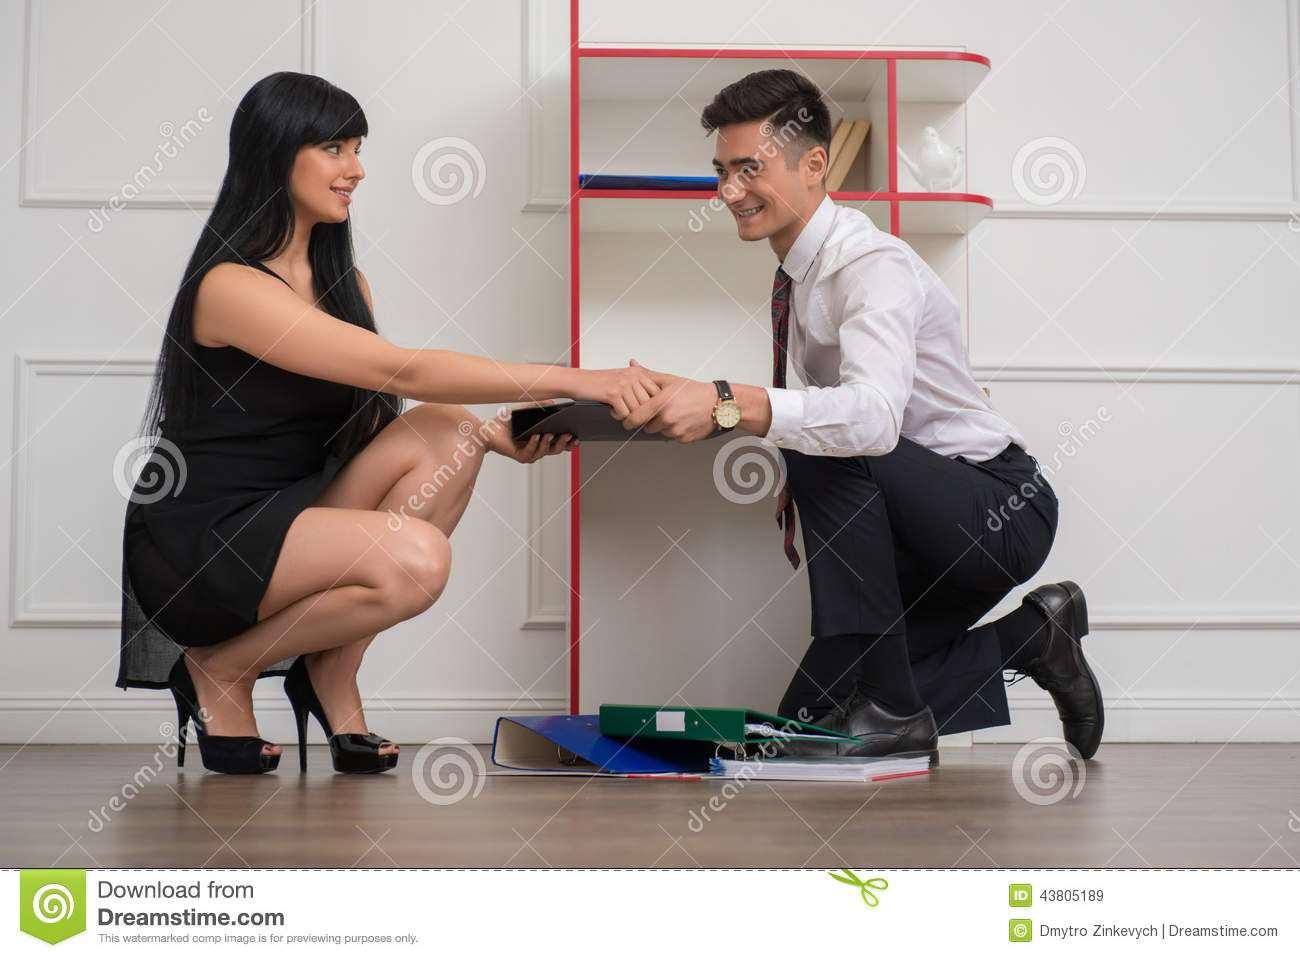 woman flirting signs at work free images for women